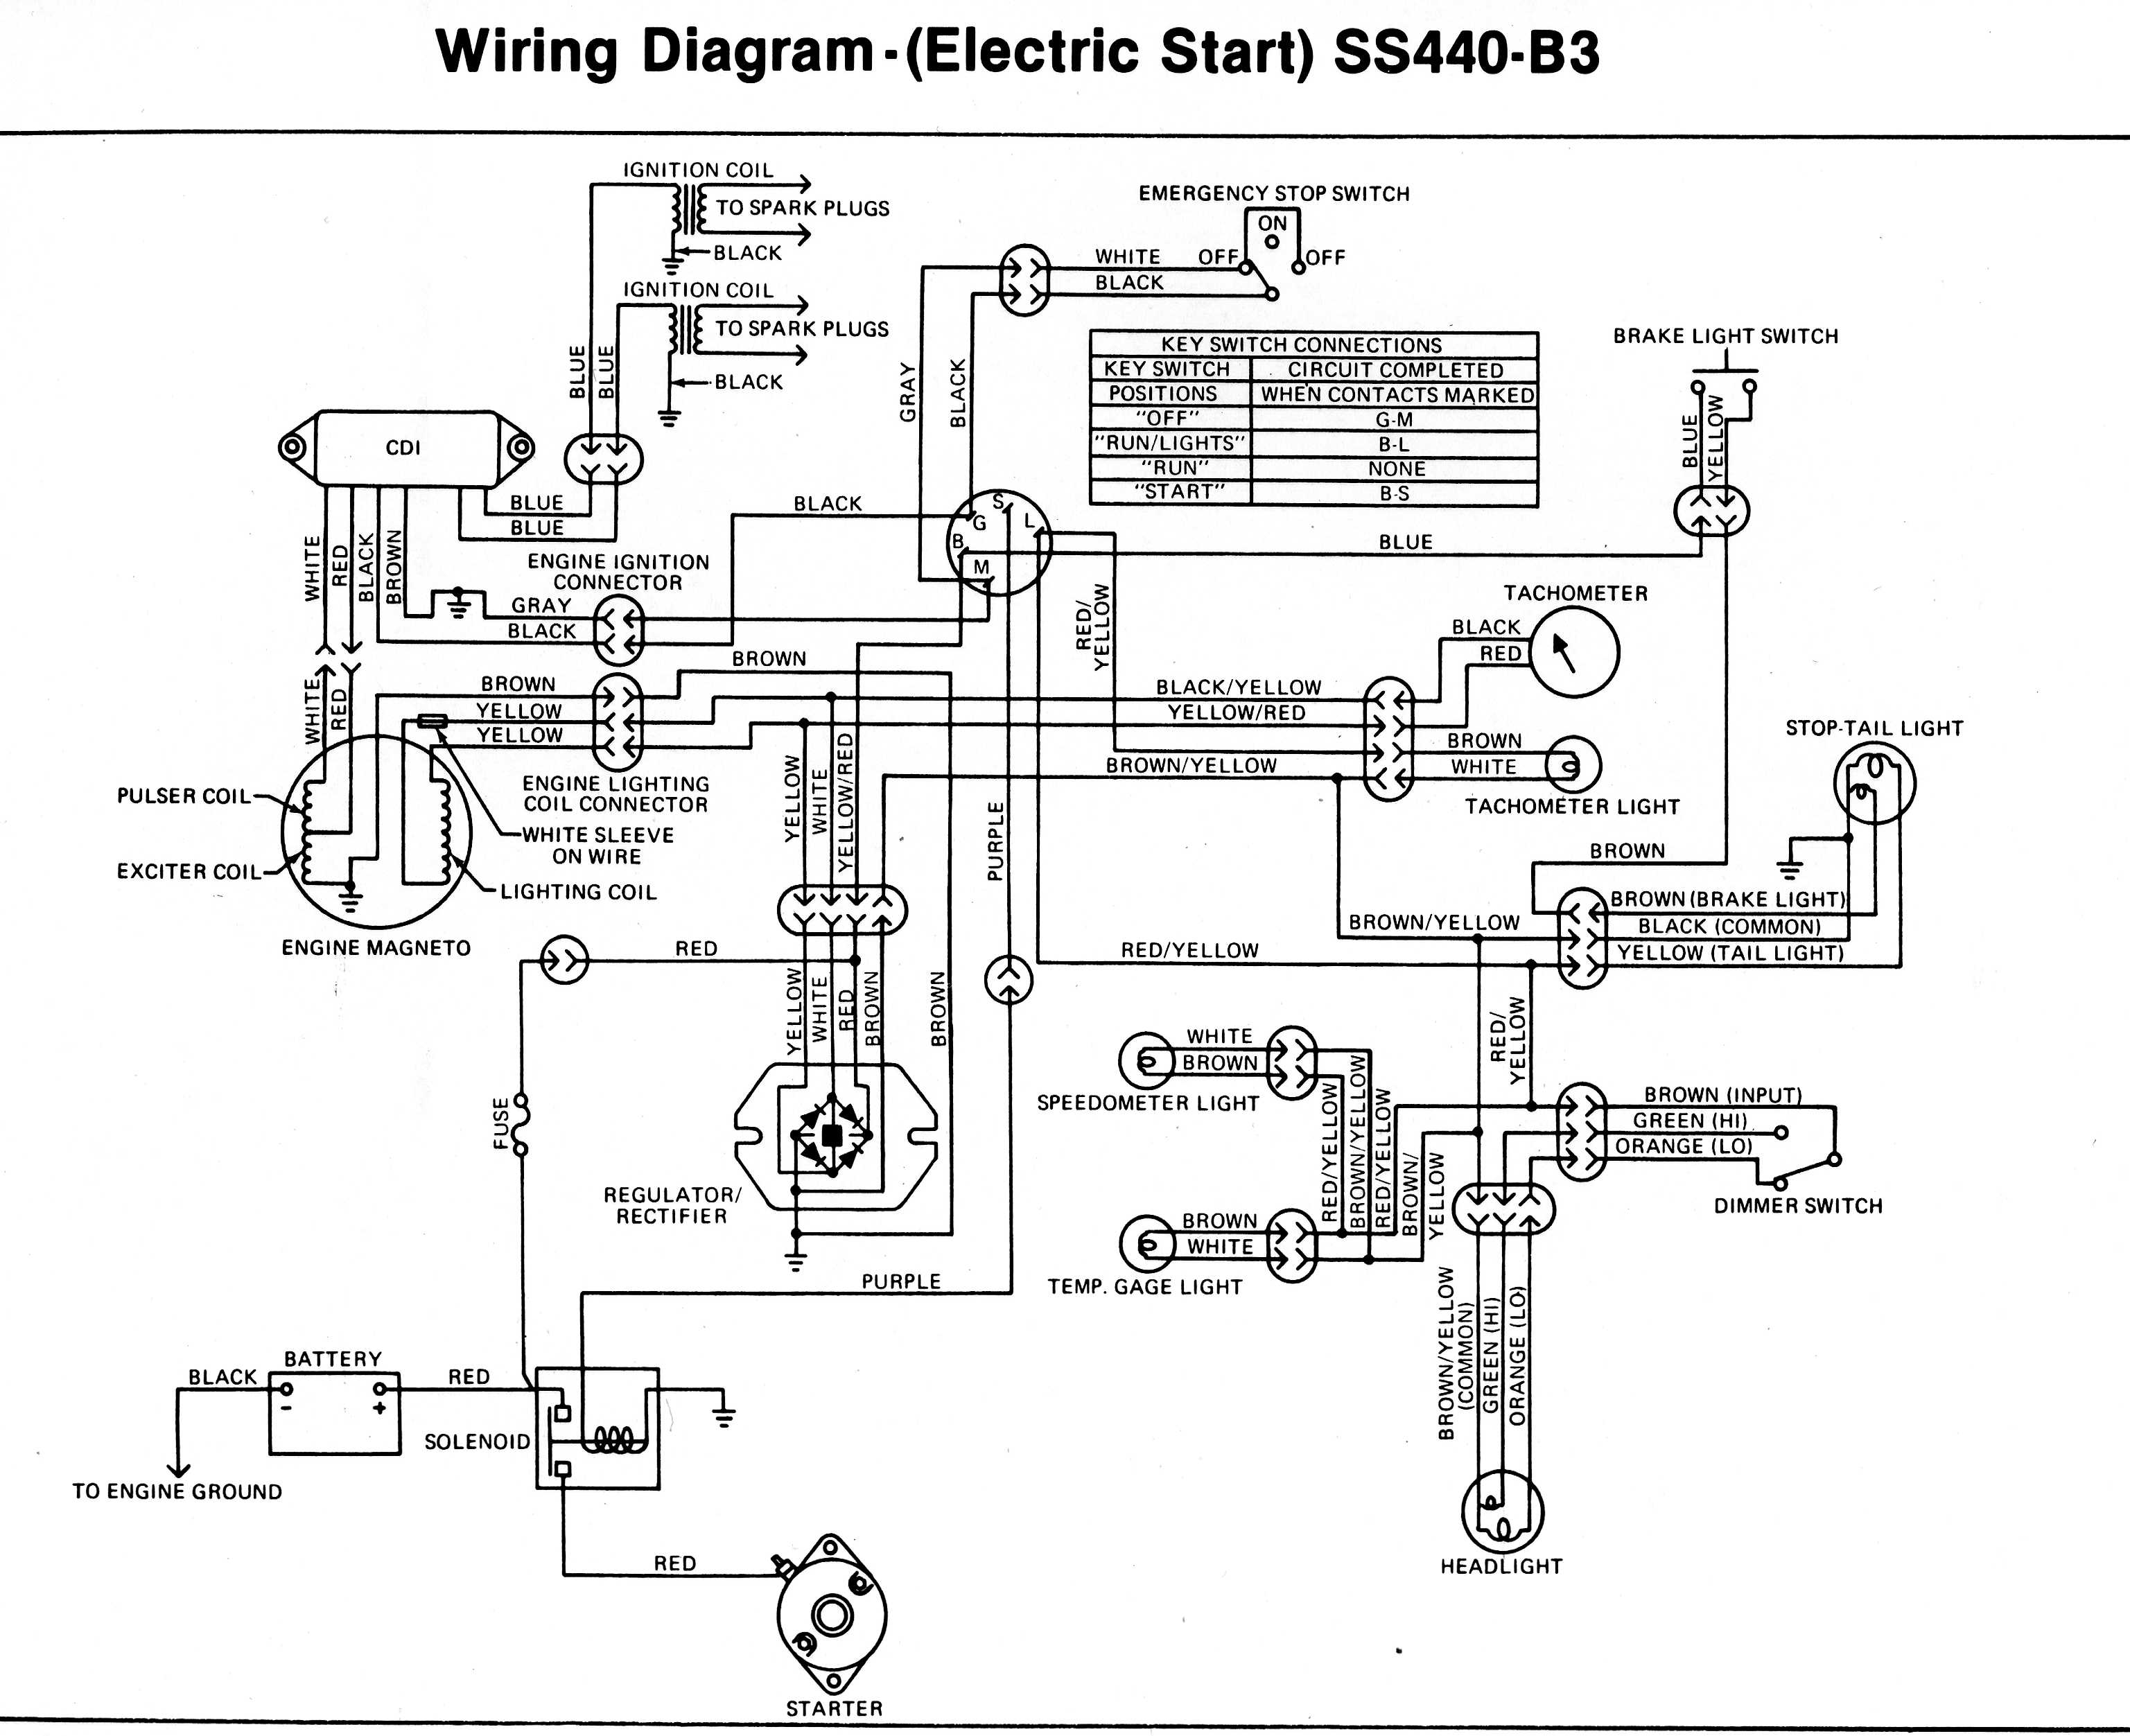 Winnebago Wiring Diagram